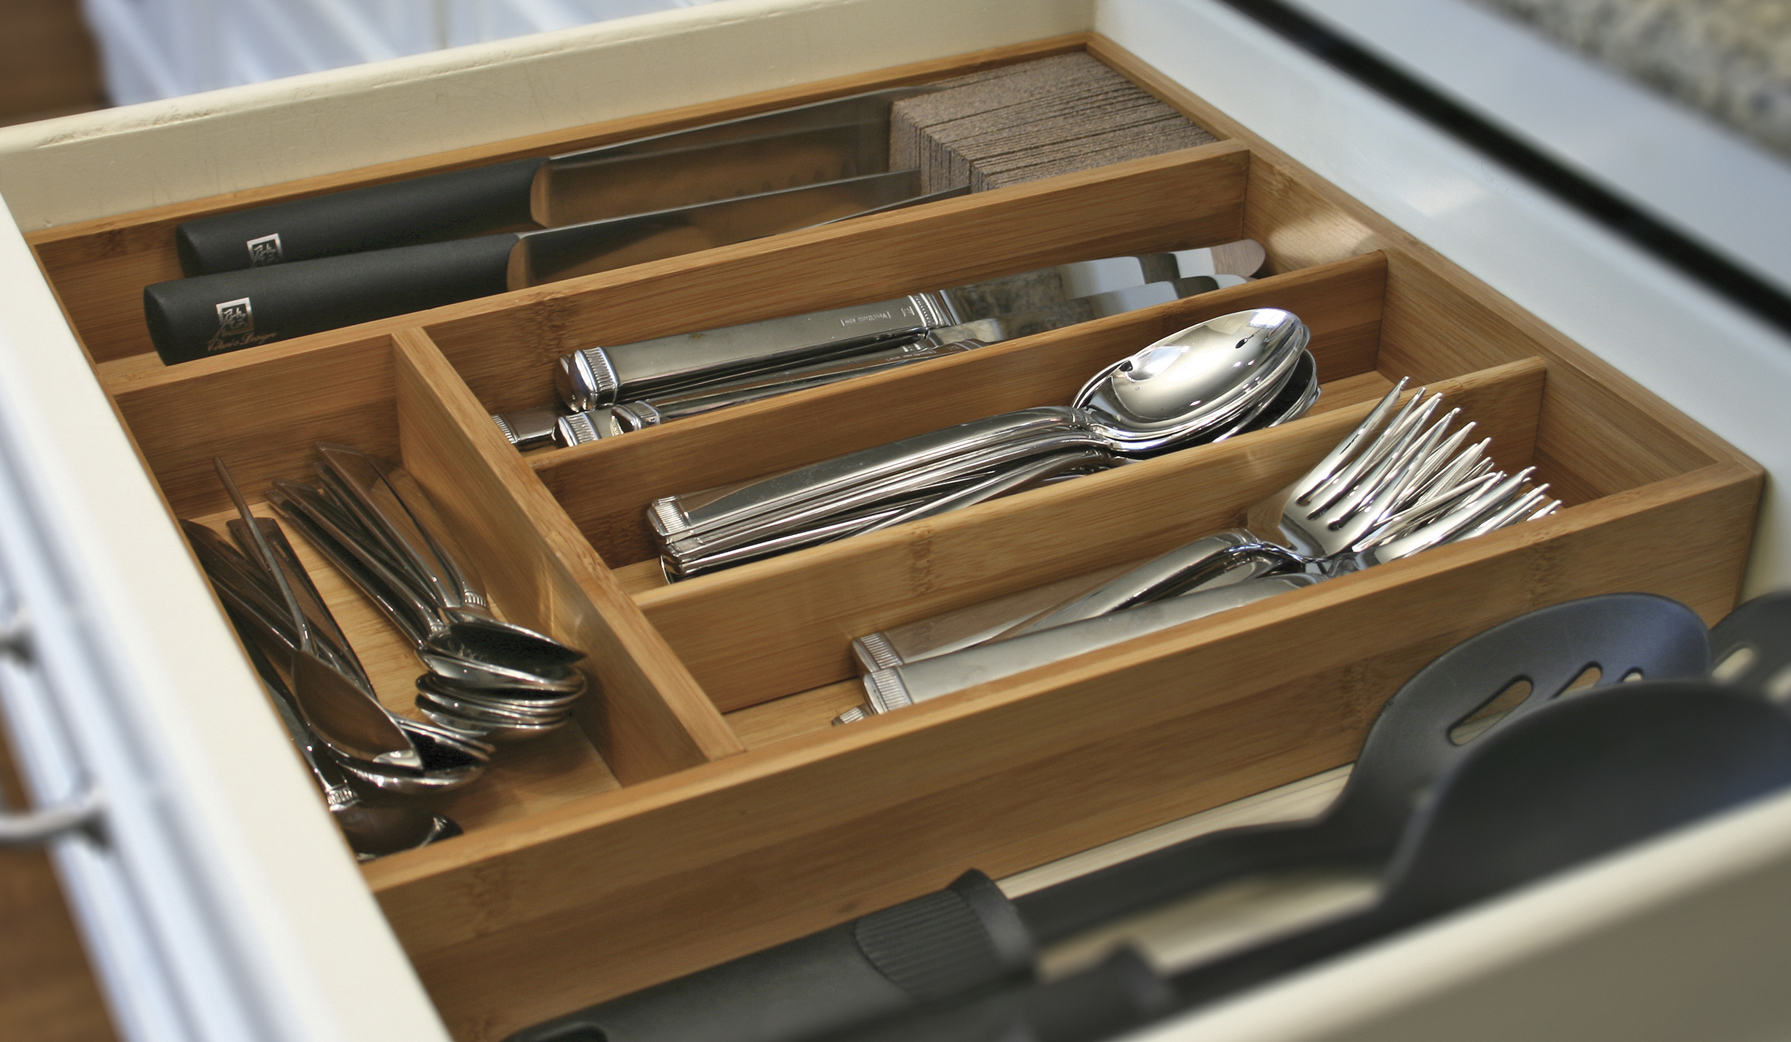 Knife Dock with Cutlery Tray